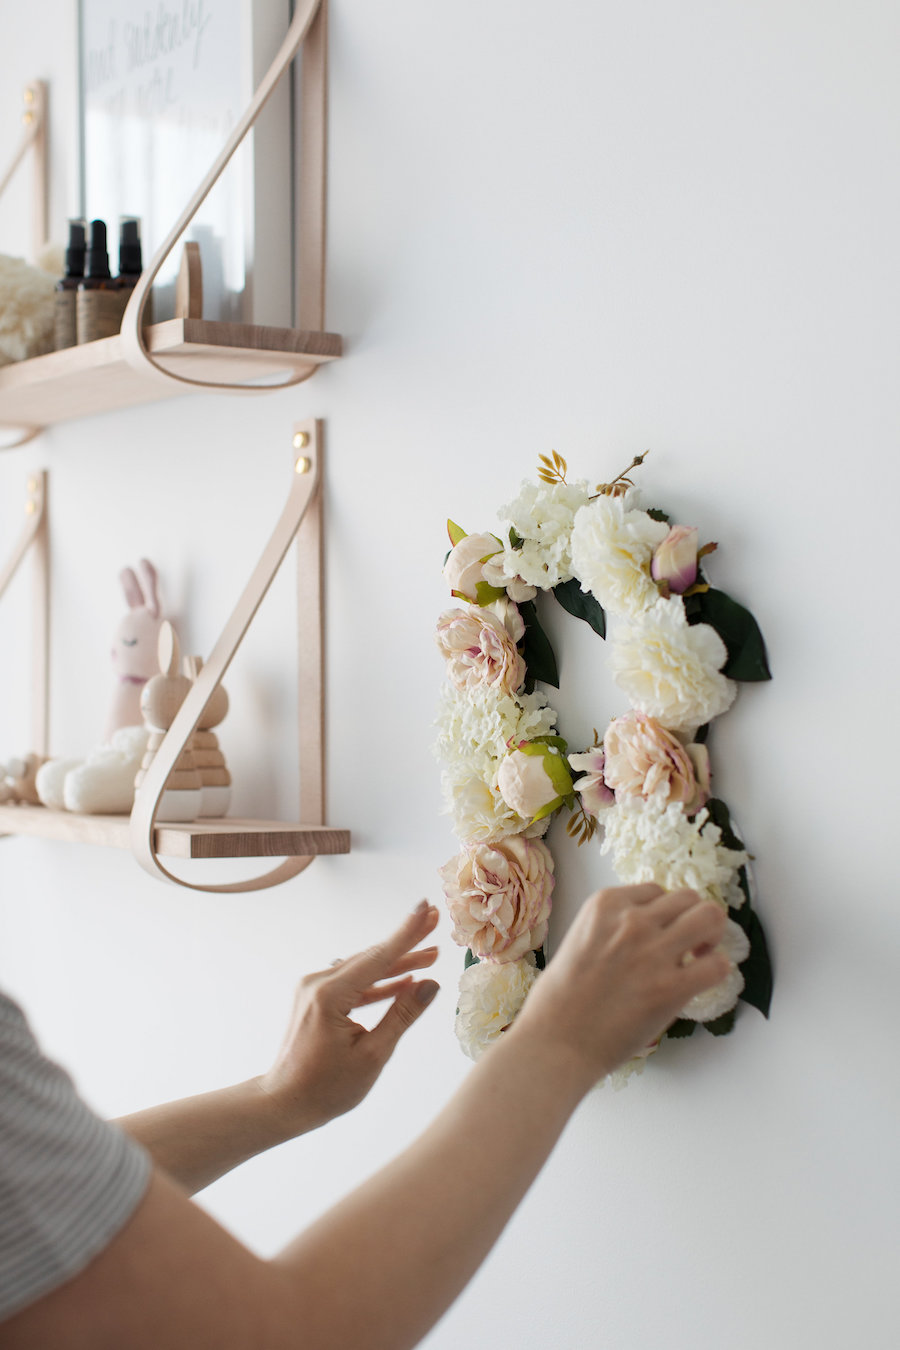 Attach floral letter wall art to wall